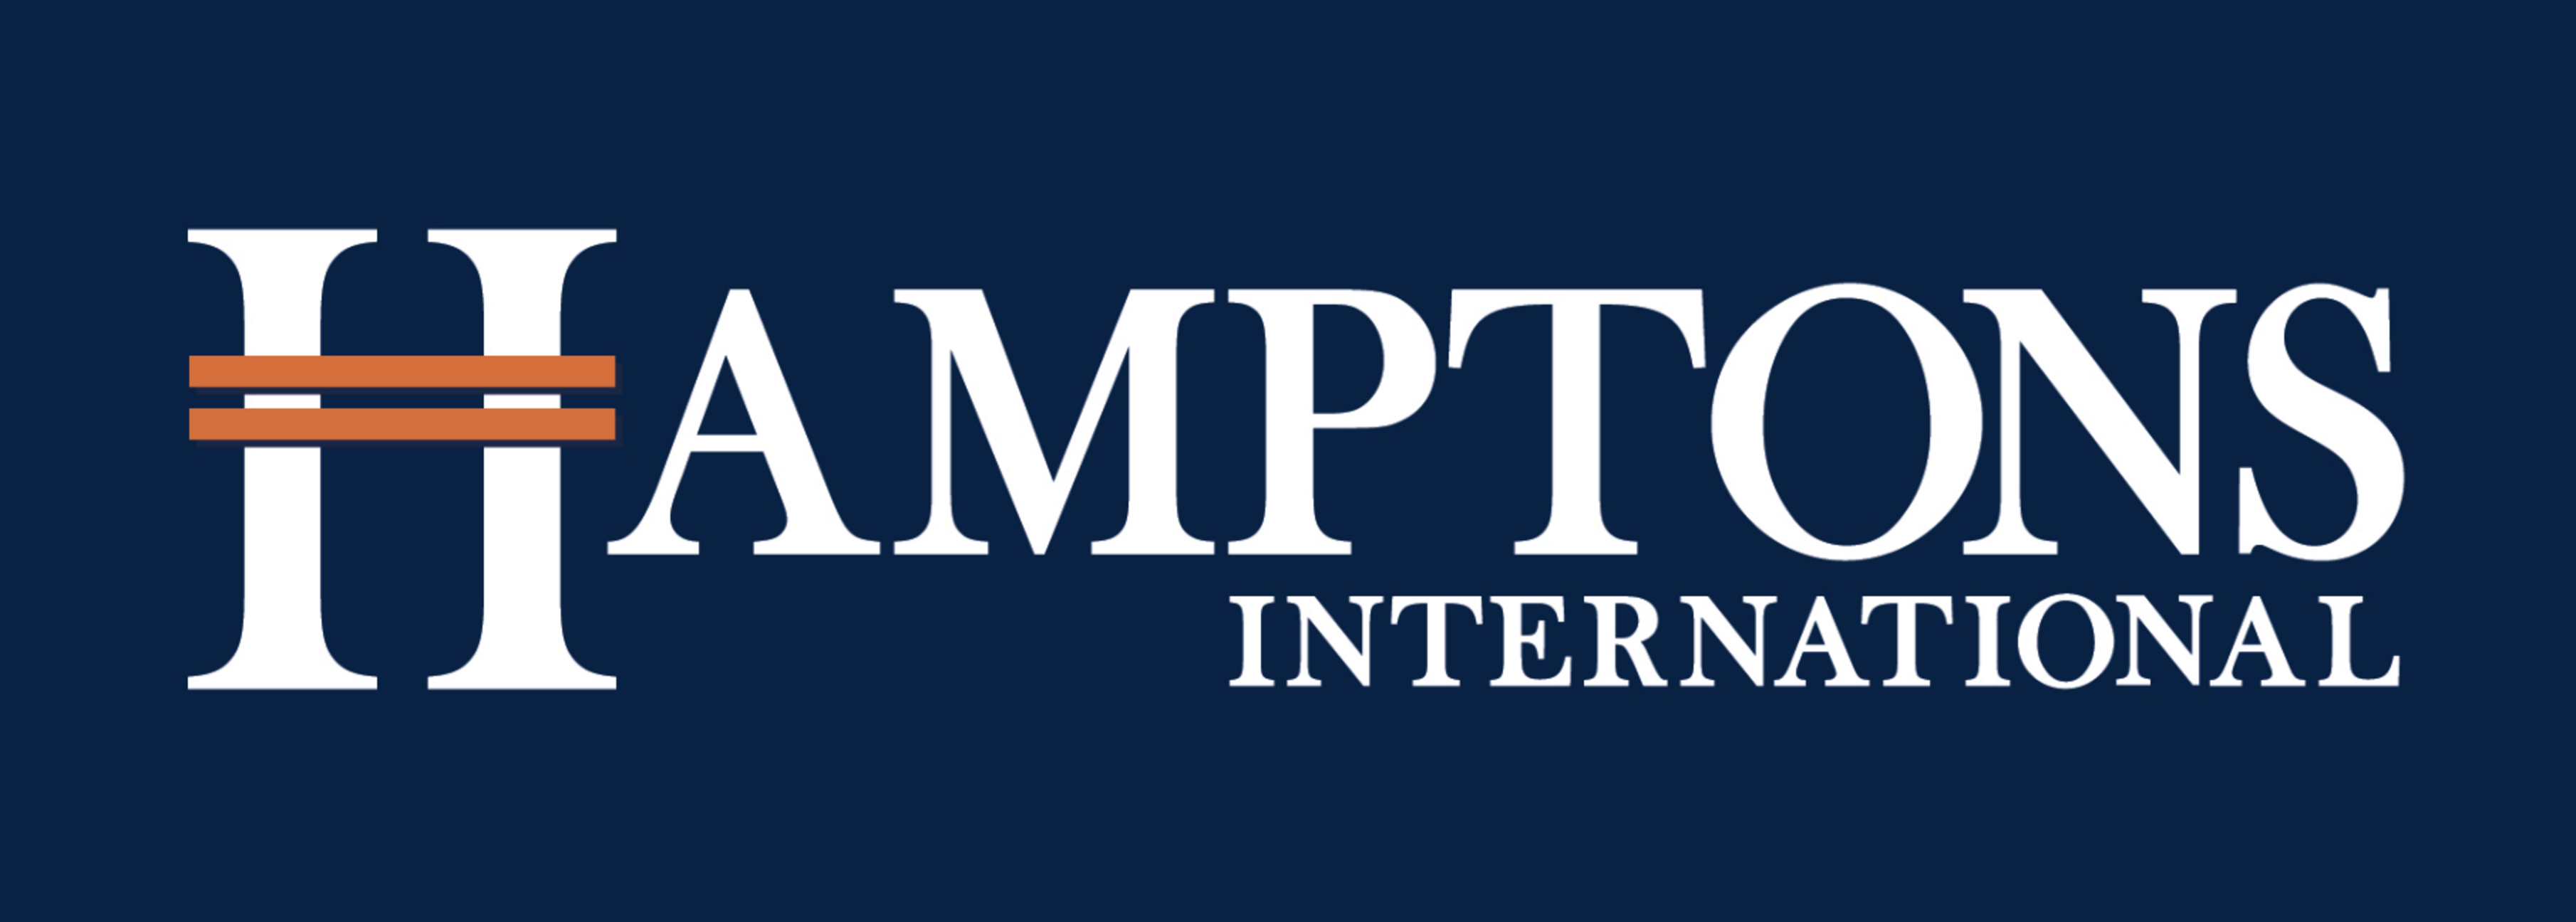 Hamptons International Real Estate logo london